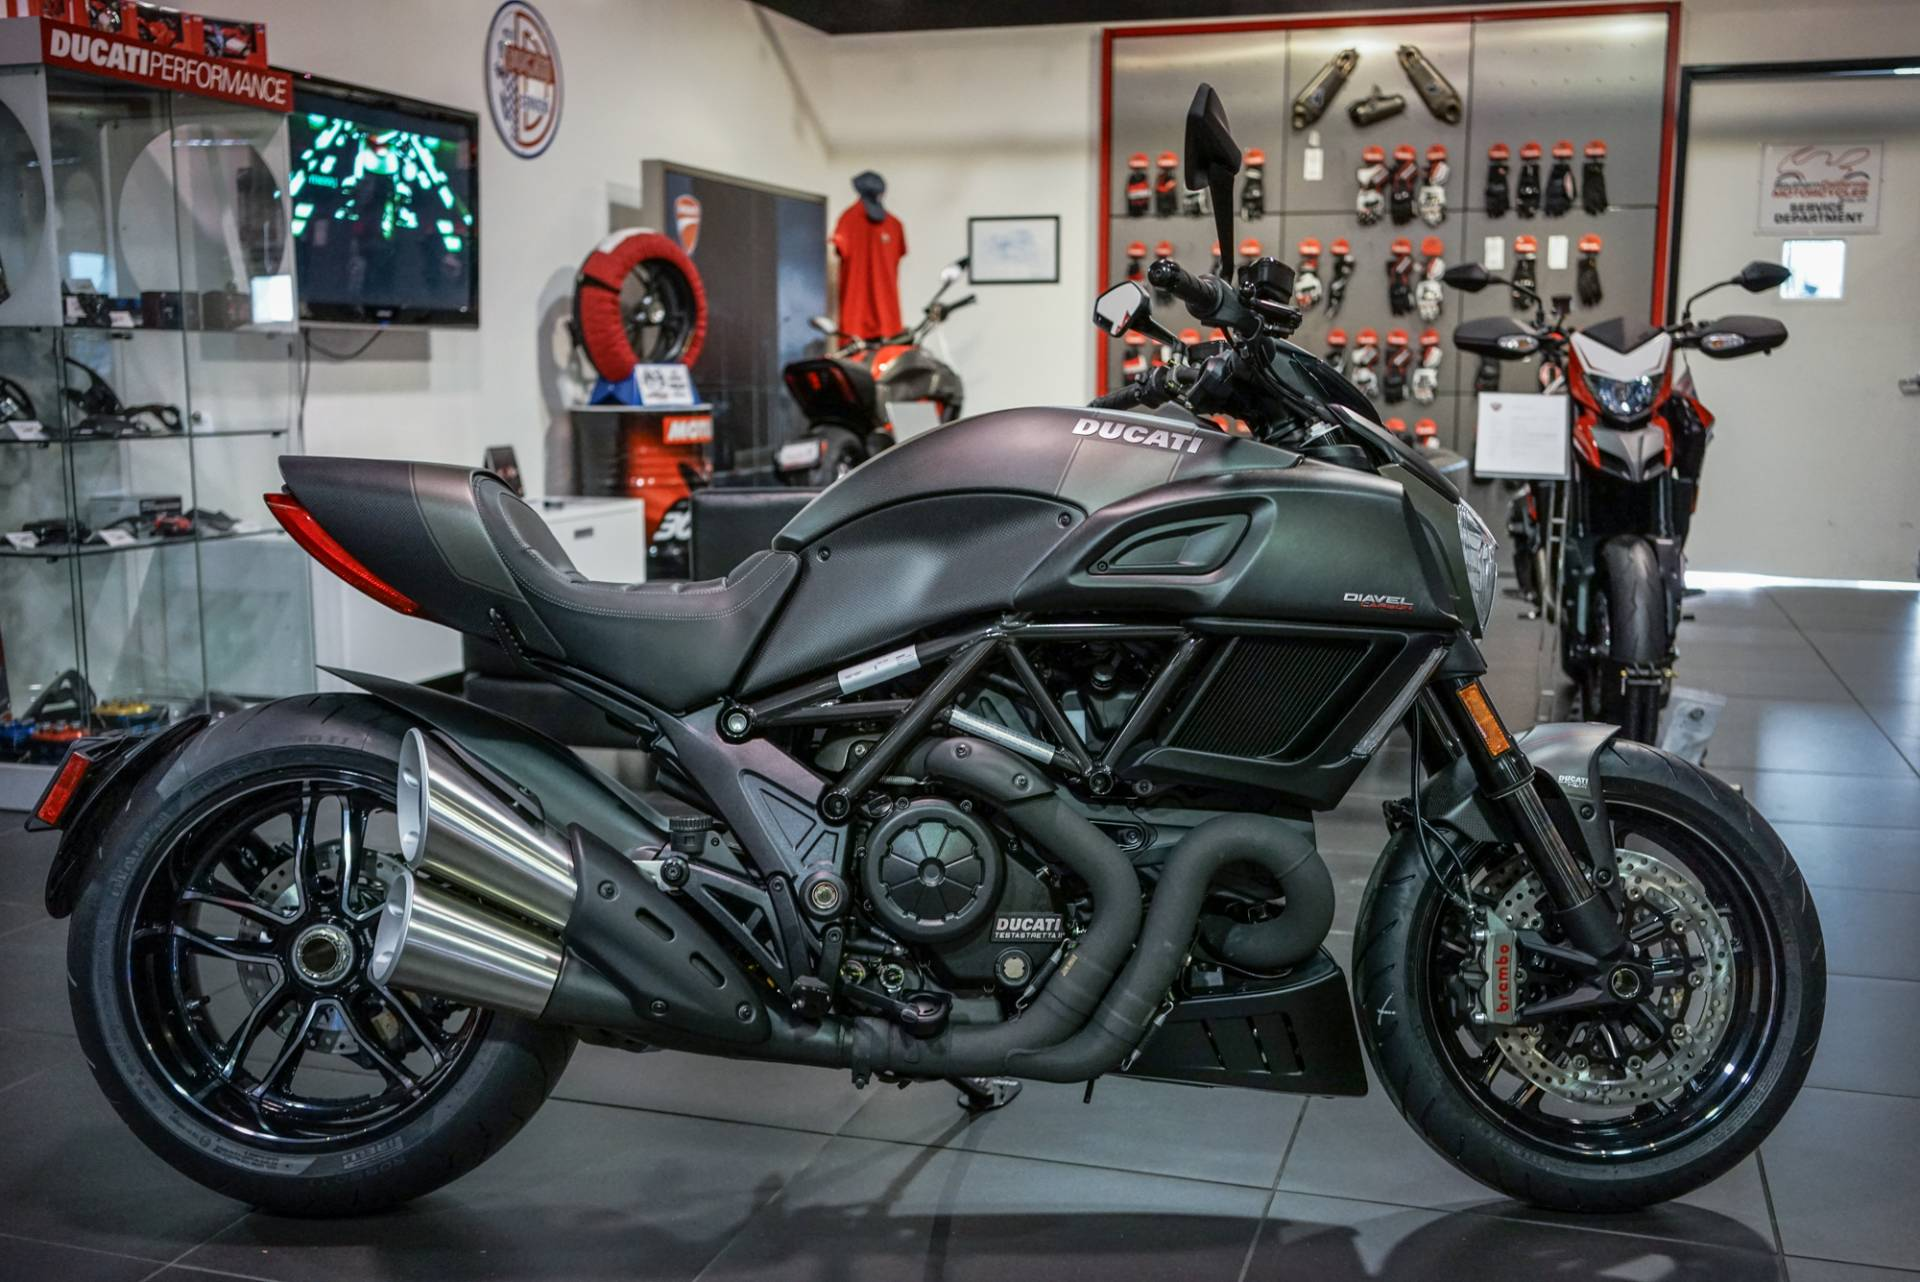 New 2018 Ducati Diavel Carbon Motorcycles In Brea Ca